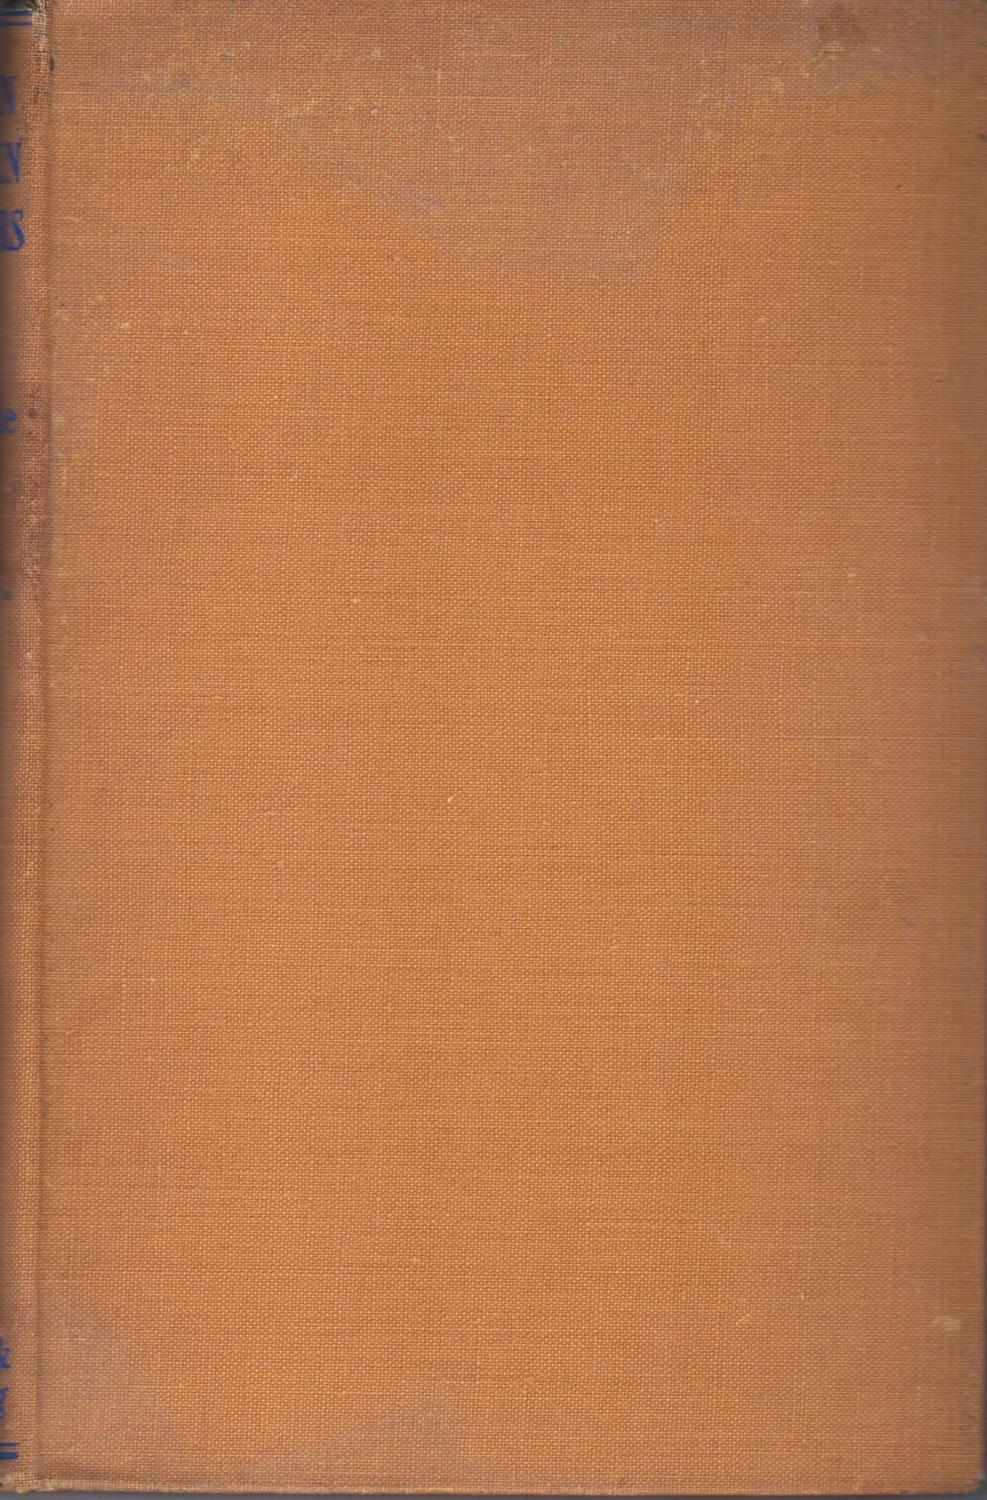 Seven Fallen Pillars The Middle East, 1915-1950 (First Edition)by Jon Kimche